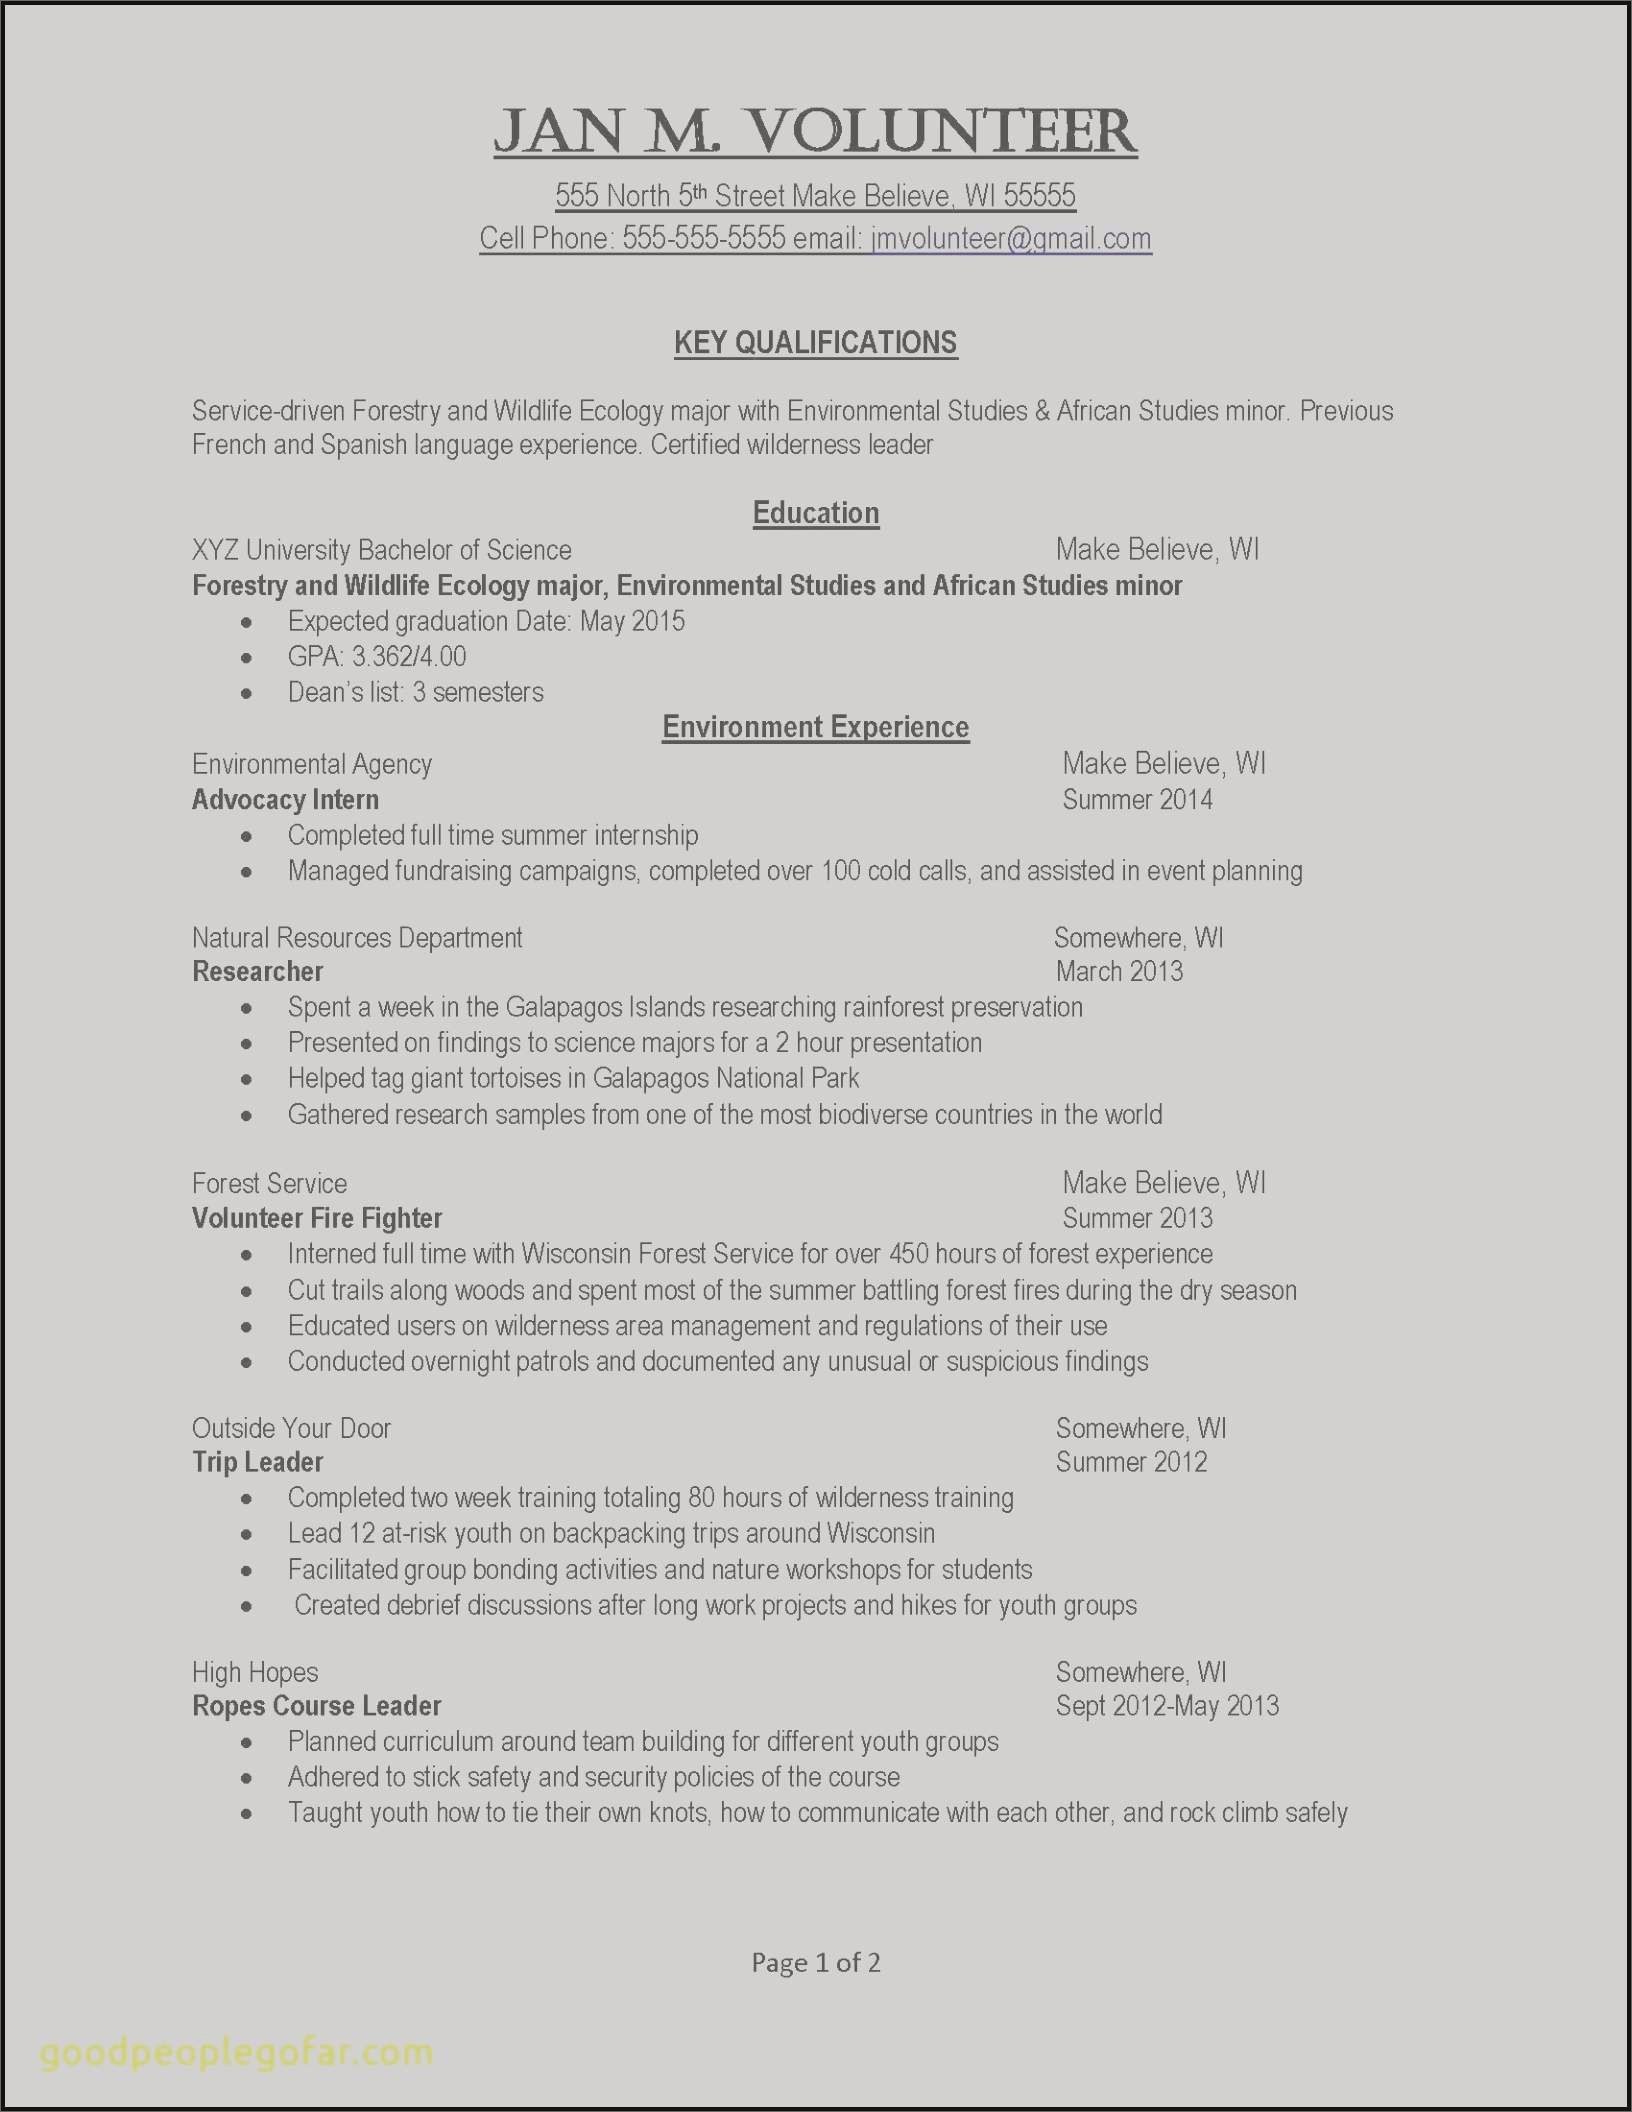 Law Firm Resume - Summary Qualifications Resume Example Fresh attorney Resume